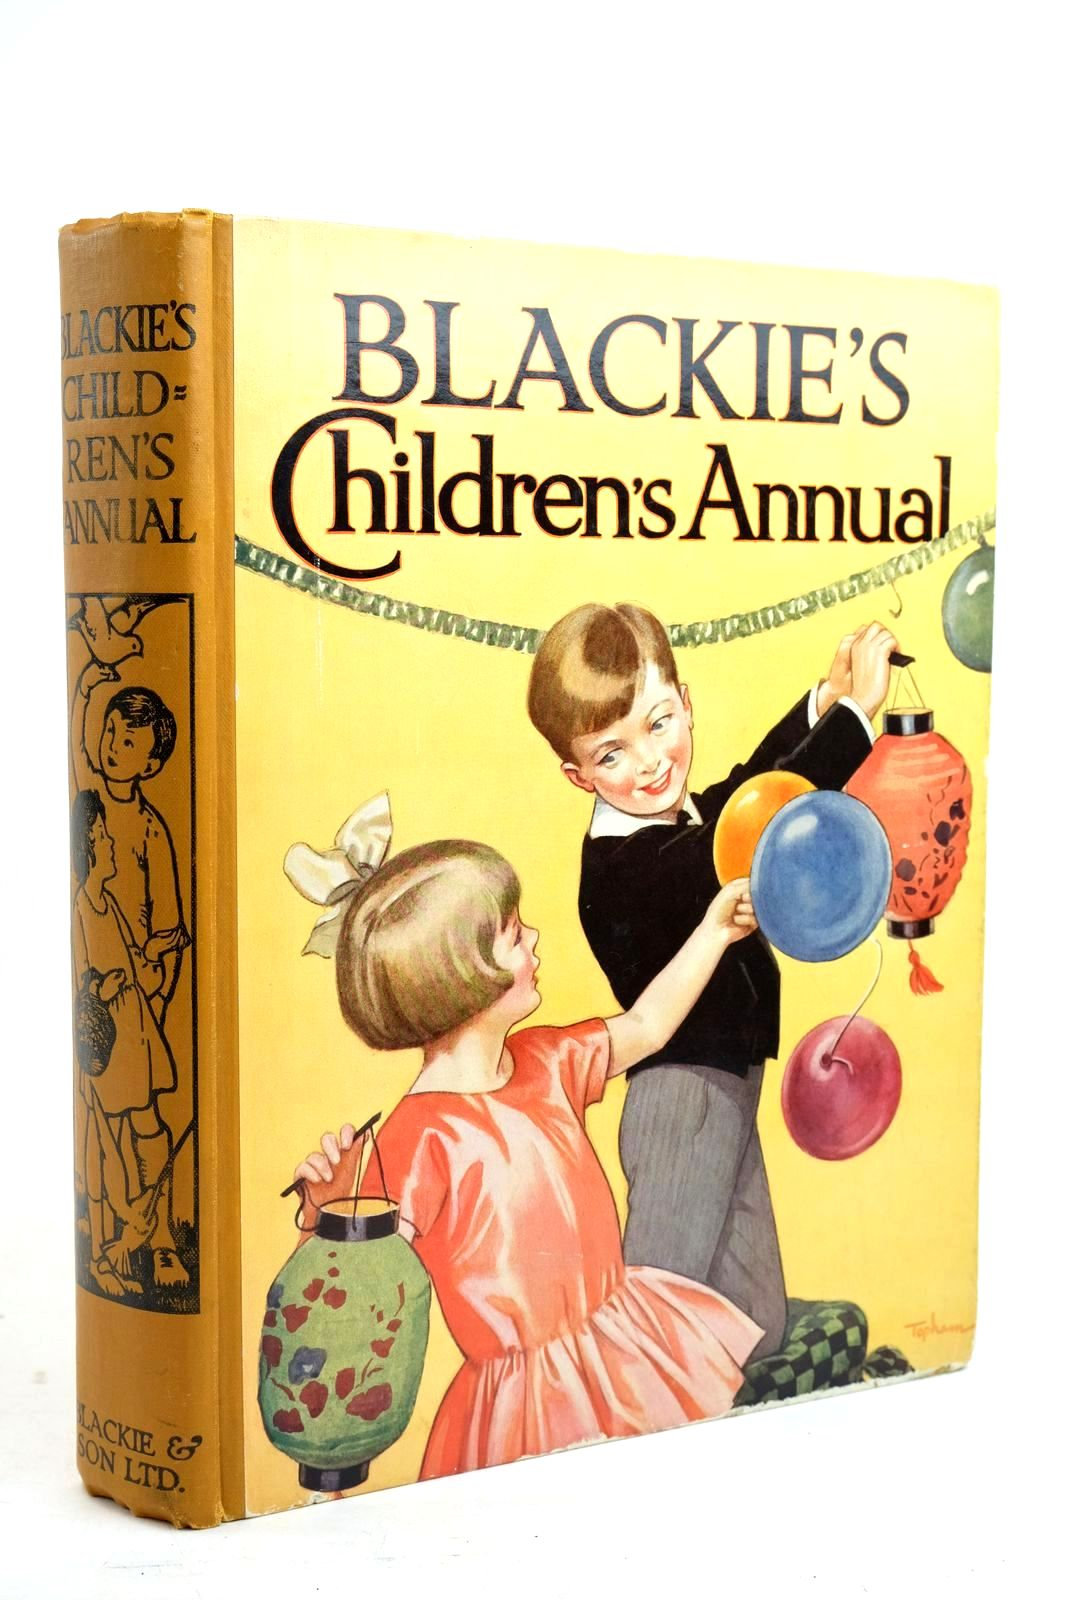 Photo of BLACKIE'S CHILDREN'S ANNUAL 25TH YEAR written by Barnes, Madeline Heward, Constance Pope, Jessie Simeon, Eleanor B. et al,  illustrated by Bestall, Alfred Bull, Rene Rountree, Harry Millar, H.R. Anderson, Anne Beaman, S.G. Hulme et al.,  published by Blackie & Son Ltd. (STOCK CODE: 1321154)  for sale by Stella & Rose's Books